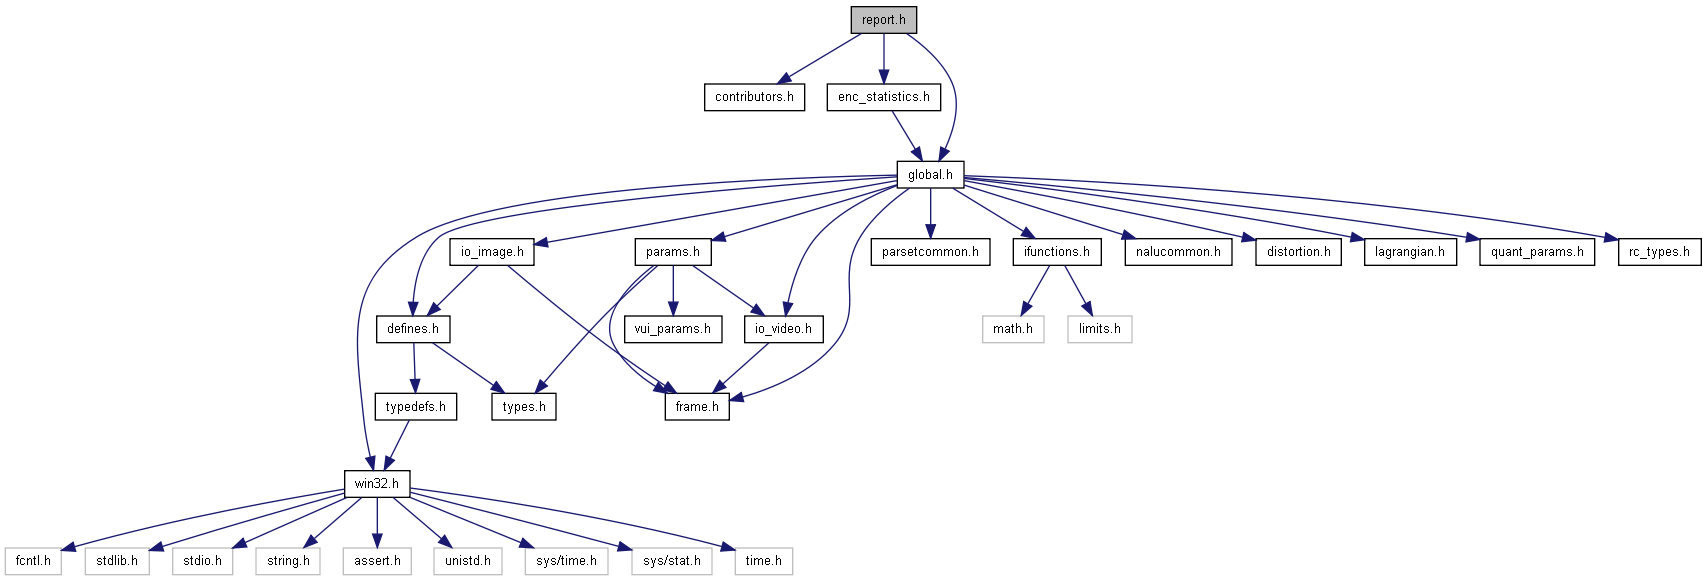 H.264/AVC Reference Software Encoder: report.h File Reference